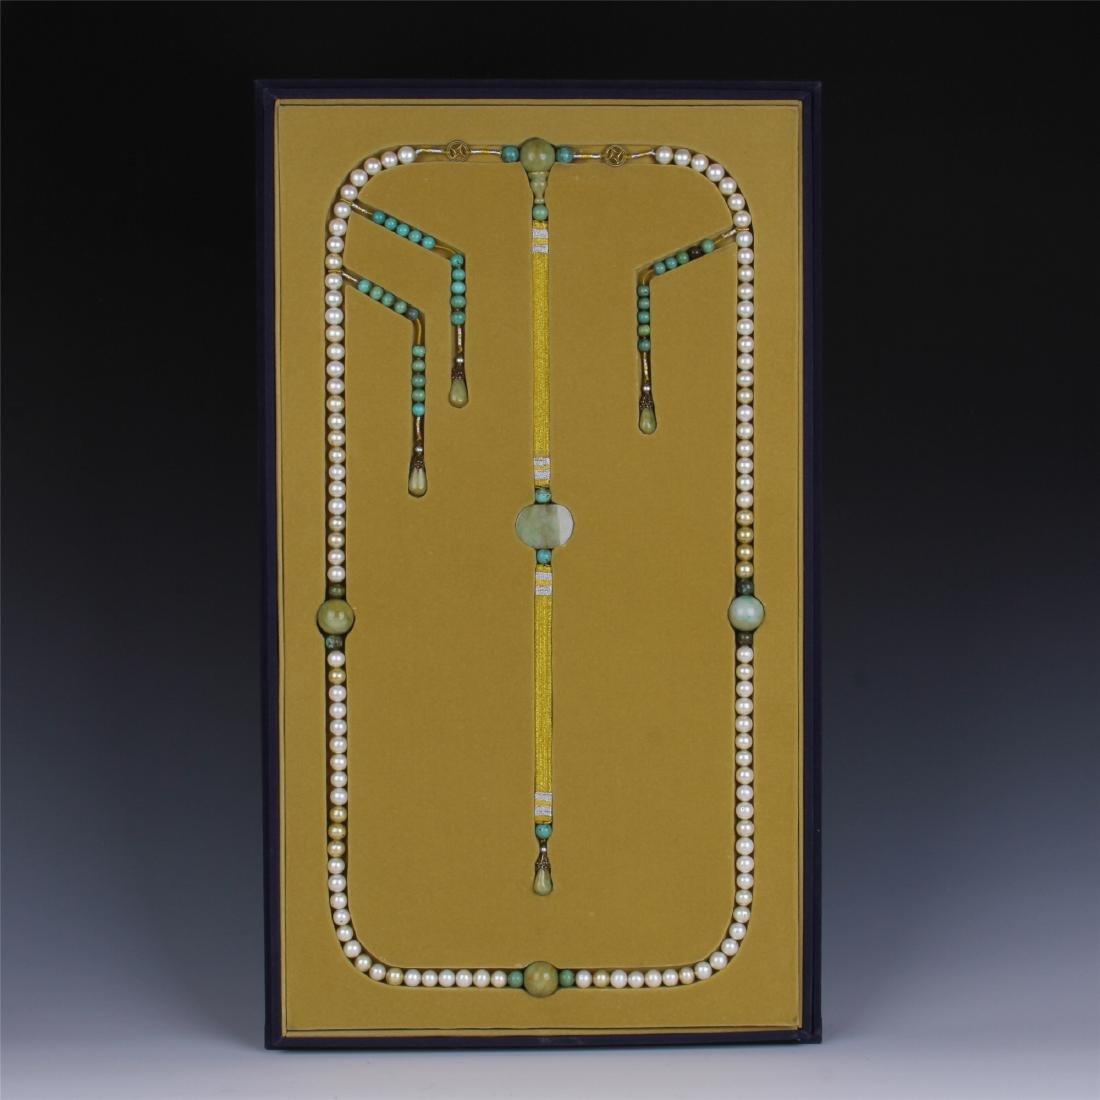 CHINESE PEARL BEAD COURT NECKLACE CHAOZHU